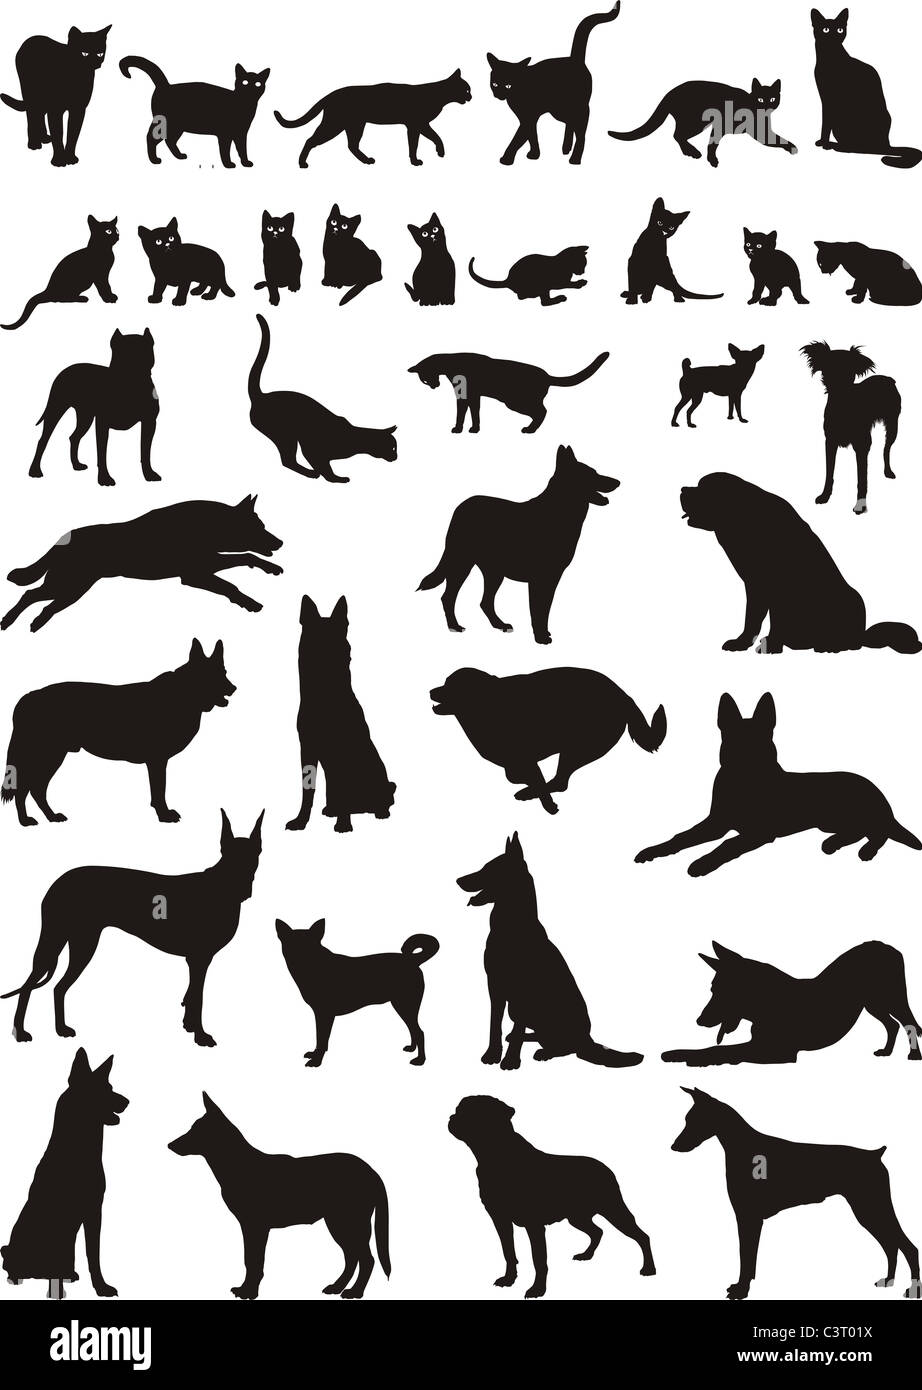 Cats and dogs - Stock Image